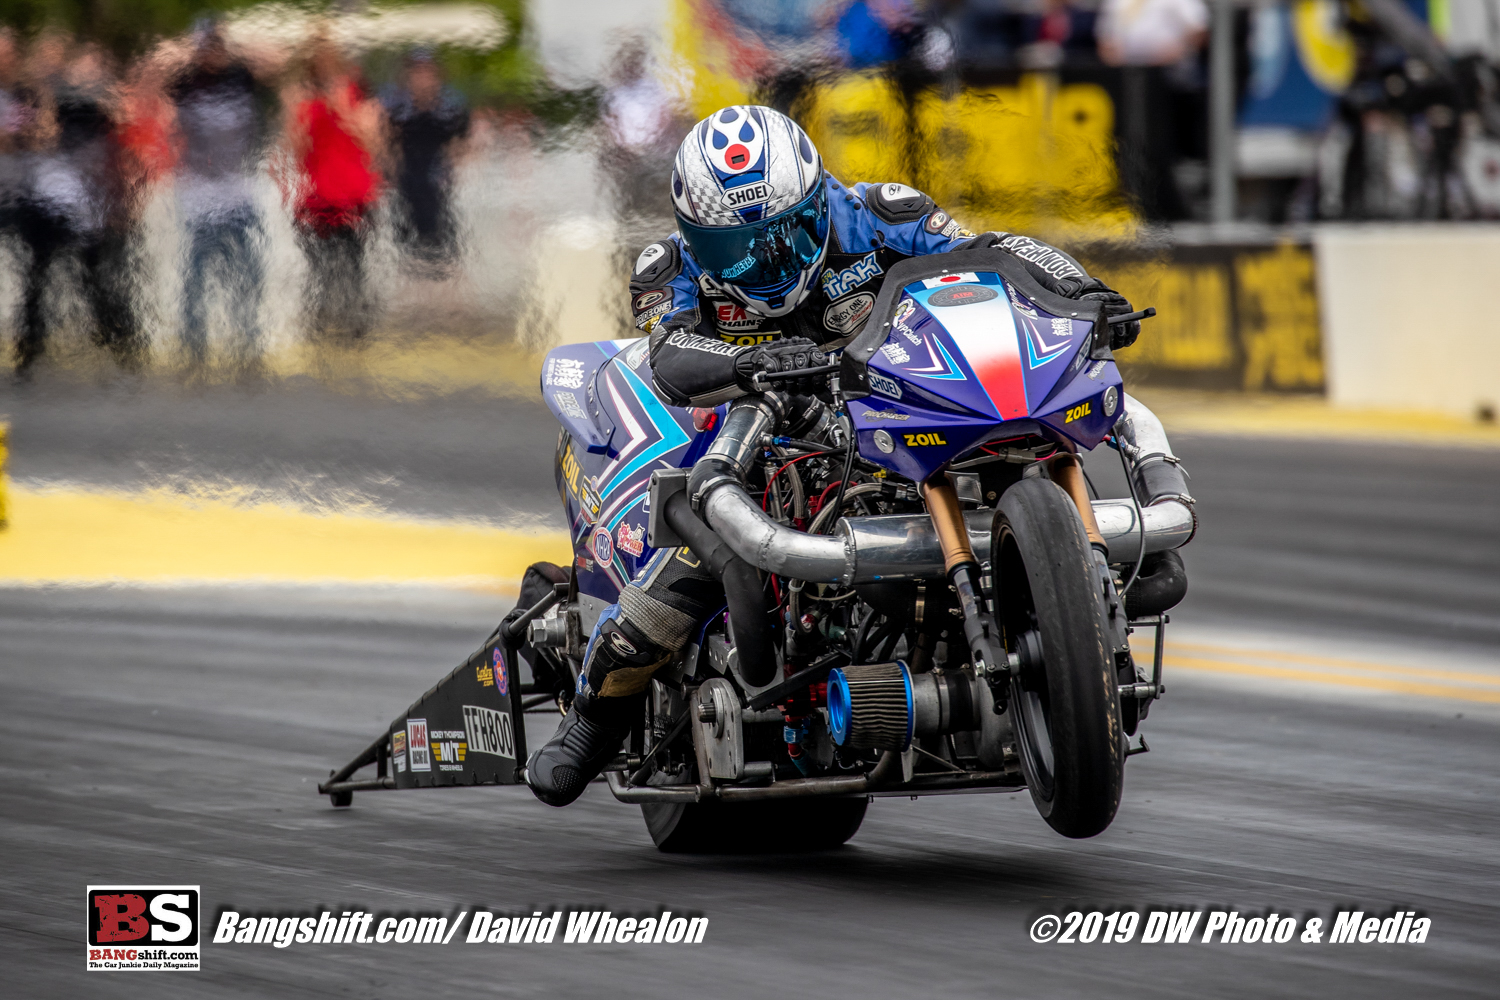 Top Fuel Harley Davidson Action Photos: The Most Insane Bikes In Drag Racing Attack Gainesville Raceway!